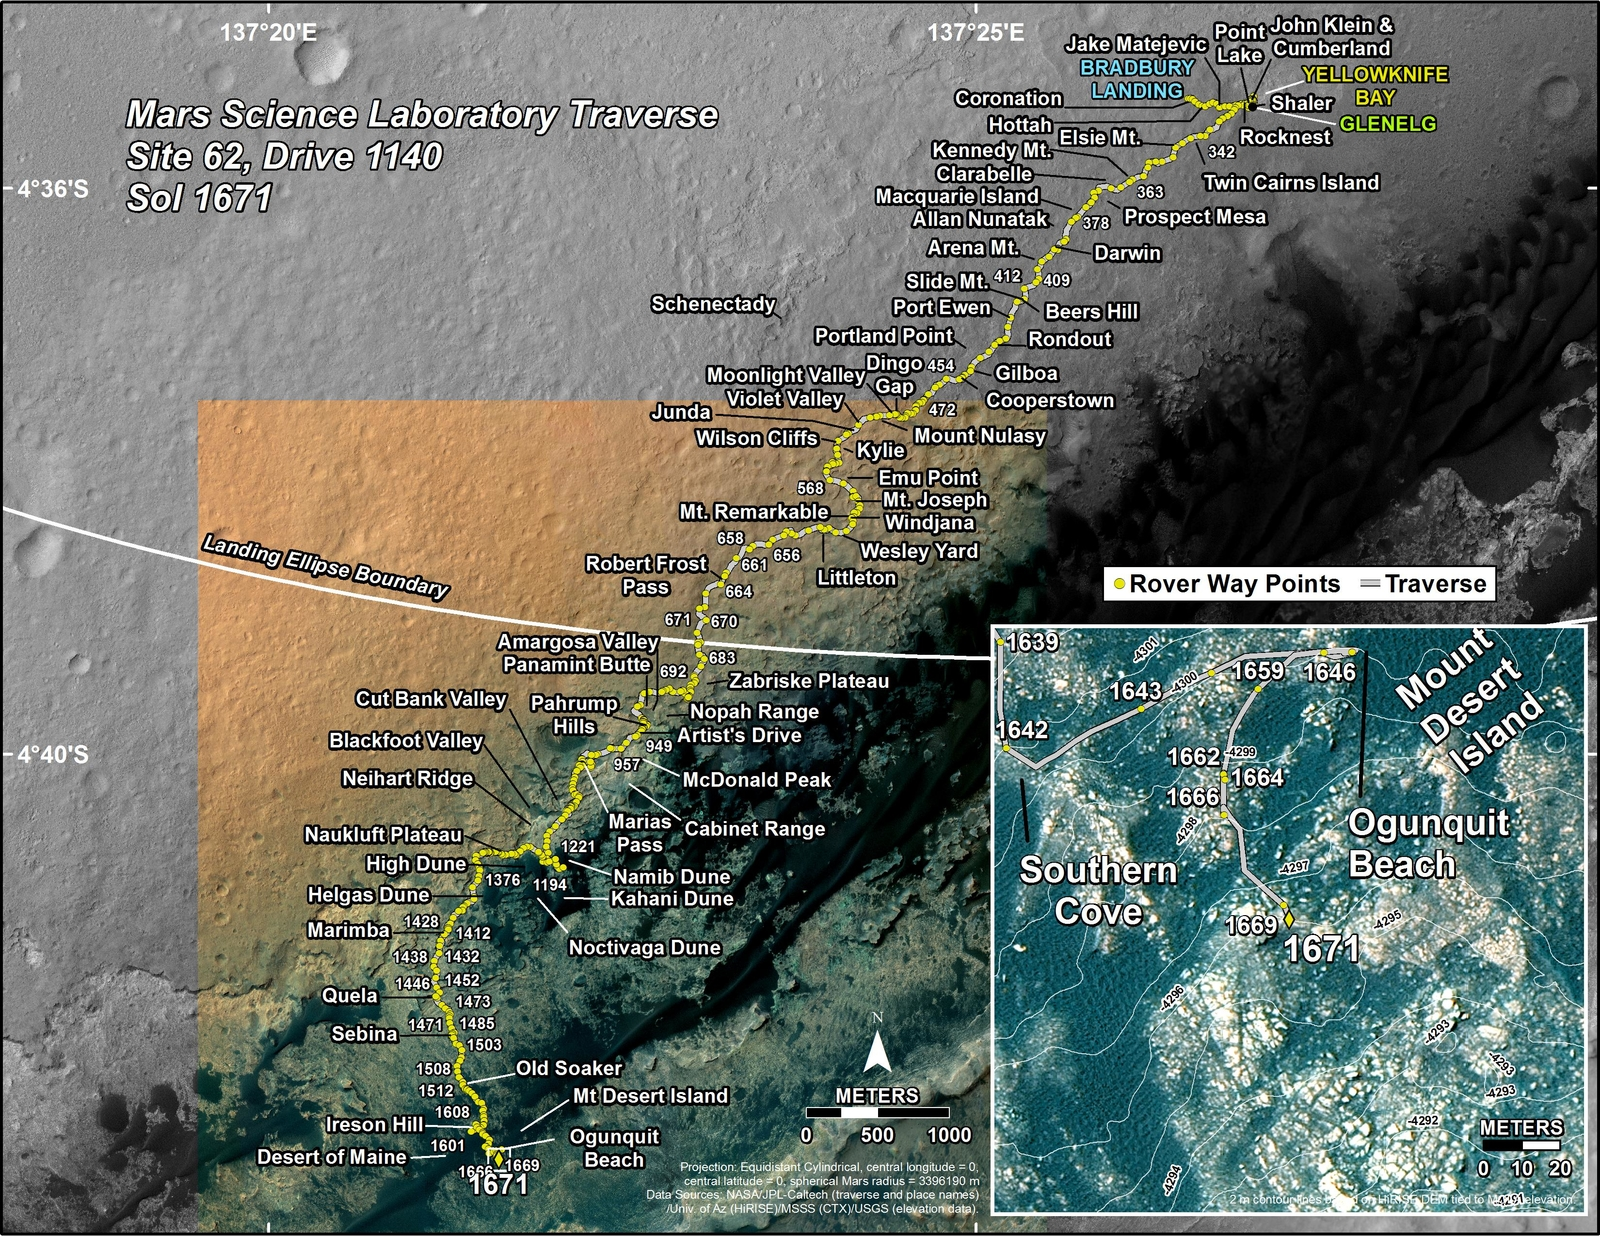 This map shows the route driven by NASA's Mars rover Curiosity through the 1671 Martian day, or sol, of the rover's mission on Mars (April 19, 2017).